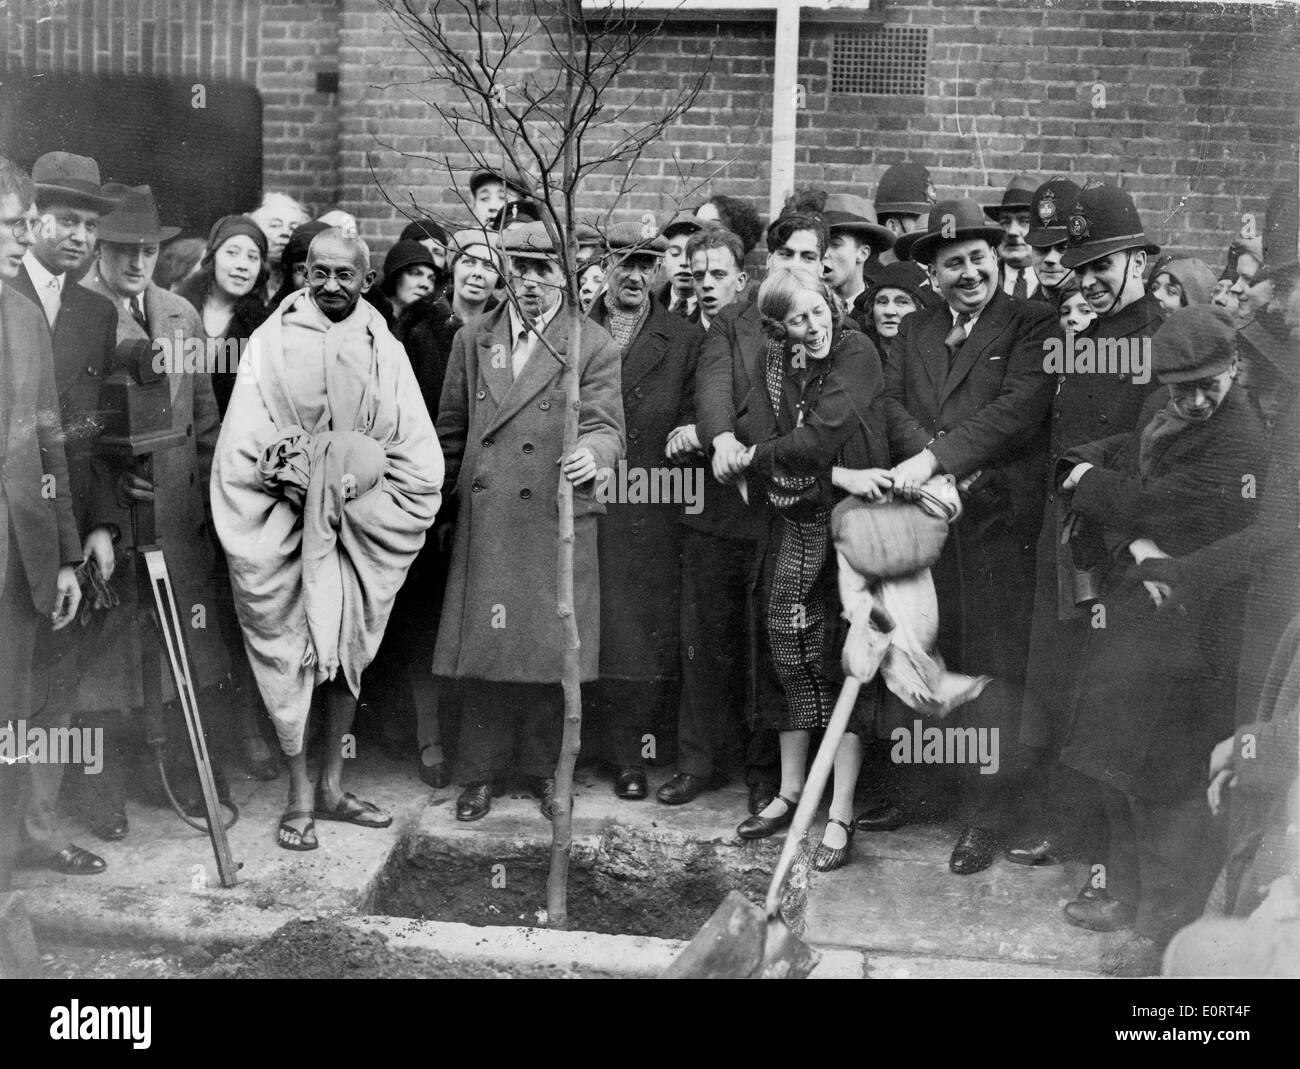 Mahatma Gandhi planted a tree outside of Kingsley Hall - Stock Image